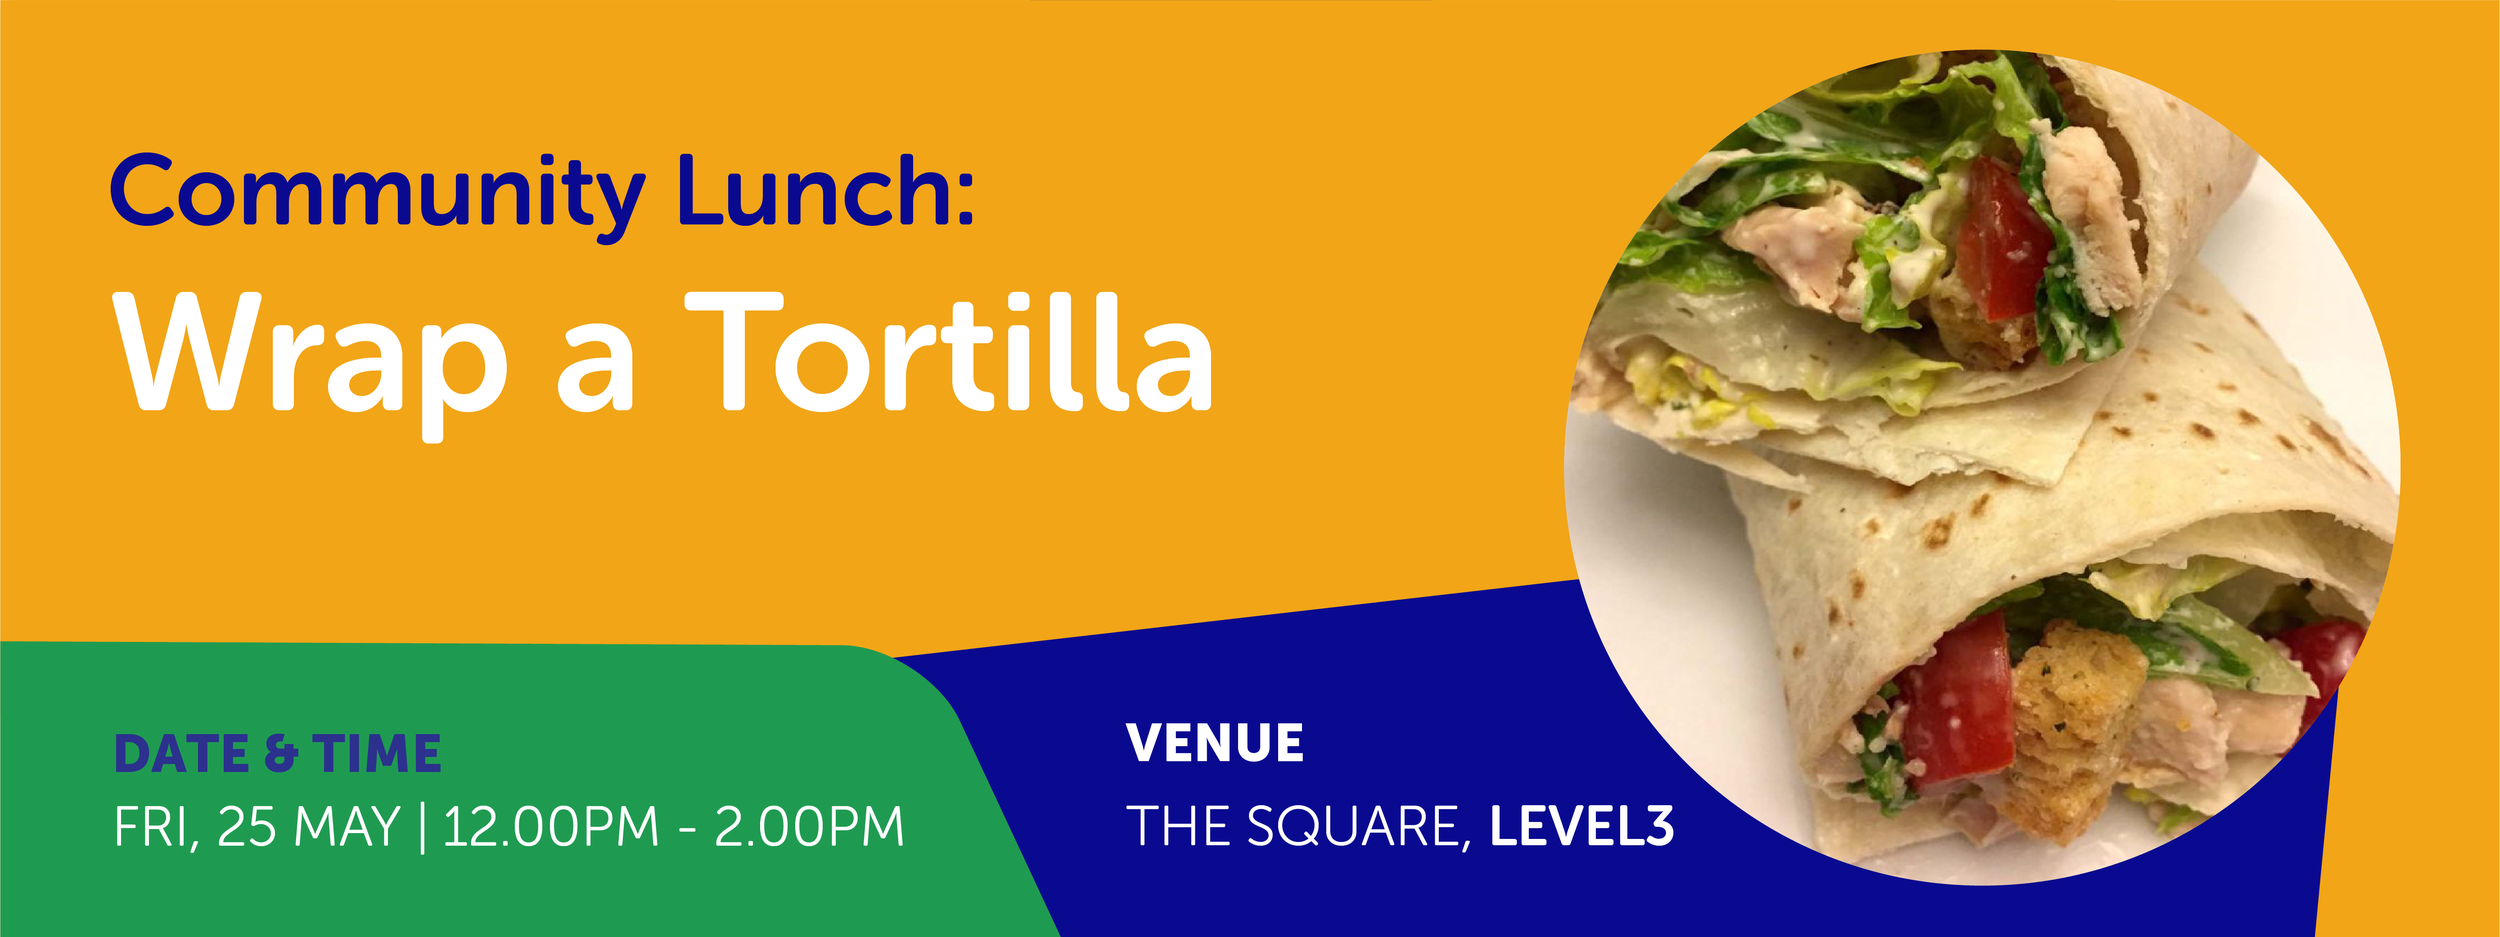 Community Lunch Banner 2505-06.png